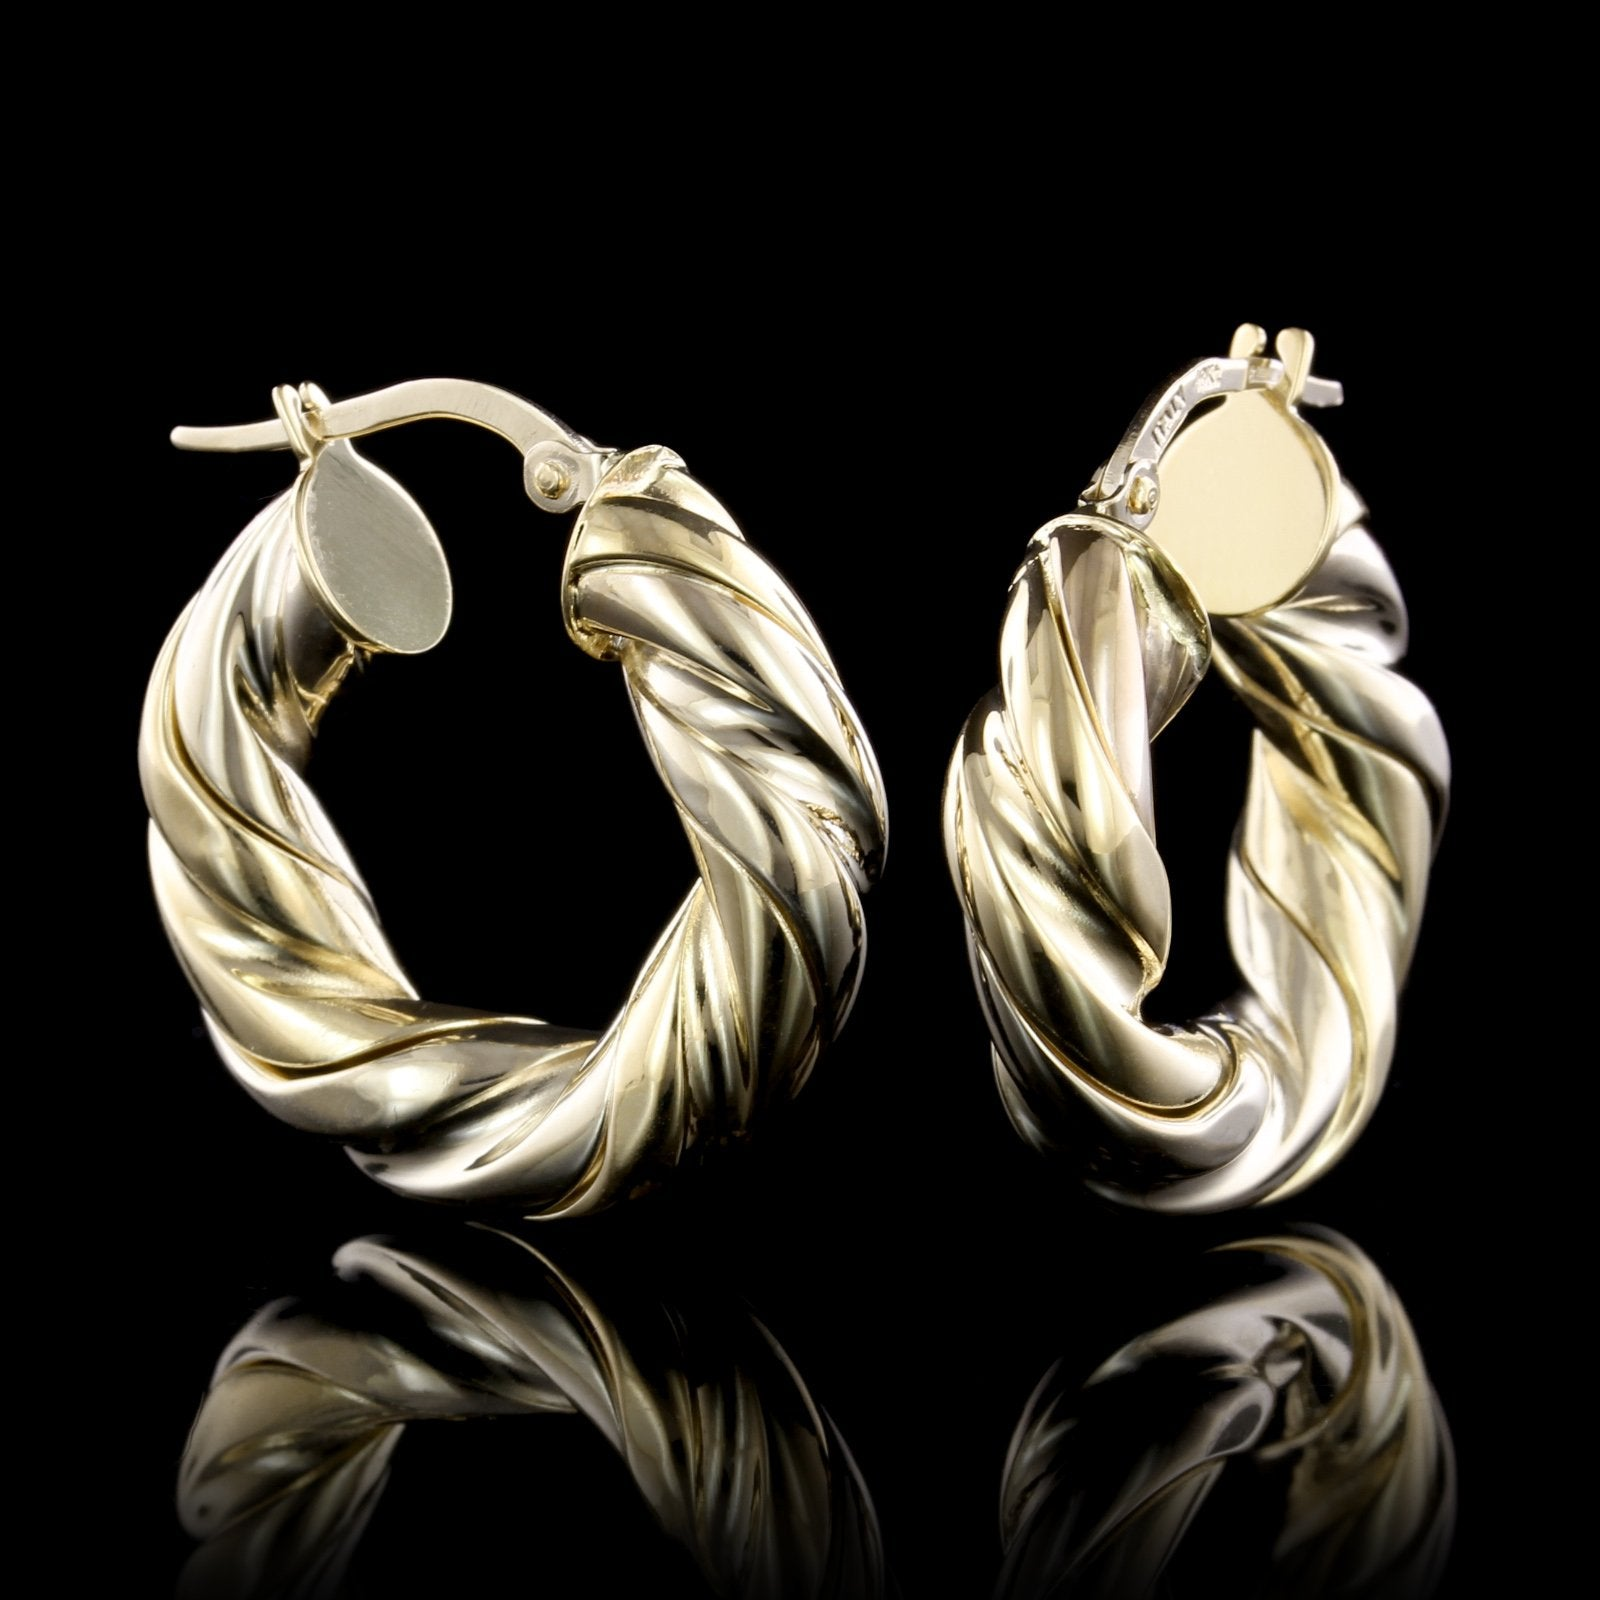 Roberto Coin 18K Yellow Gold Twisted Hoop Earrings